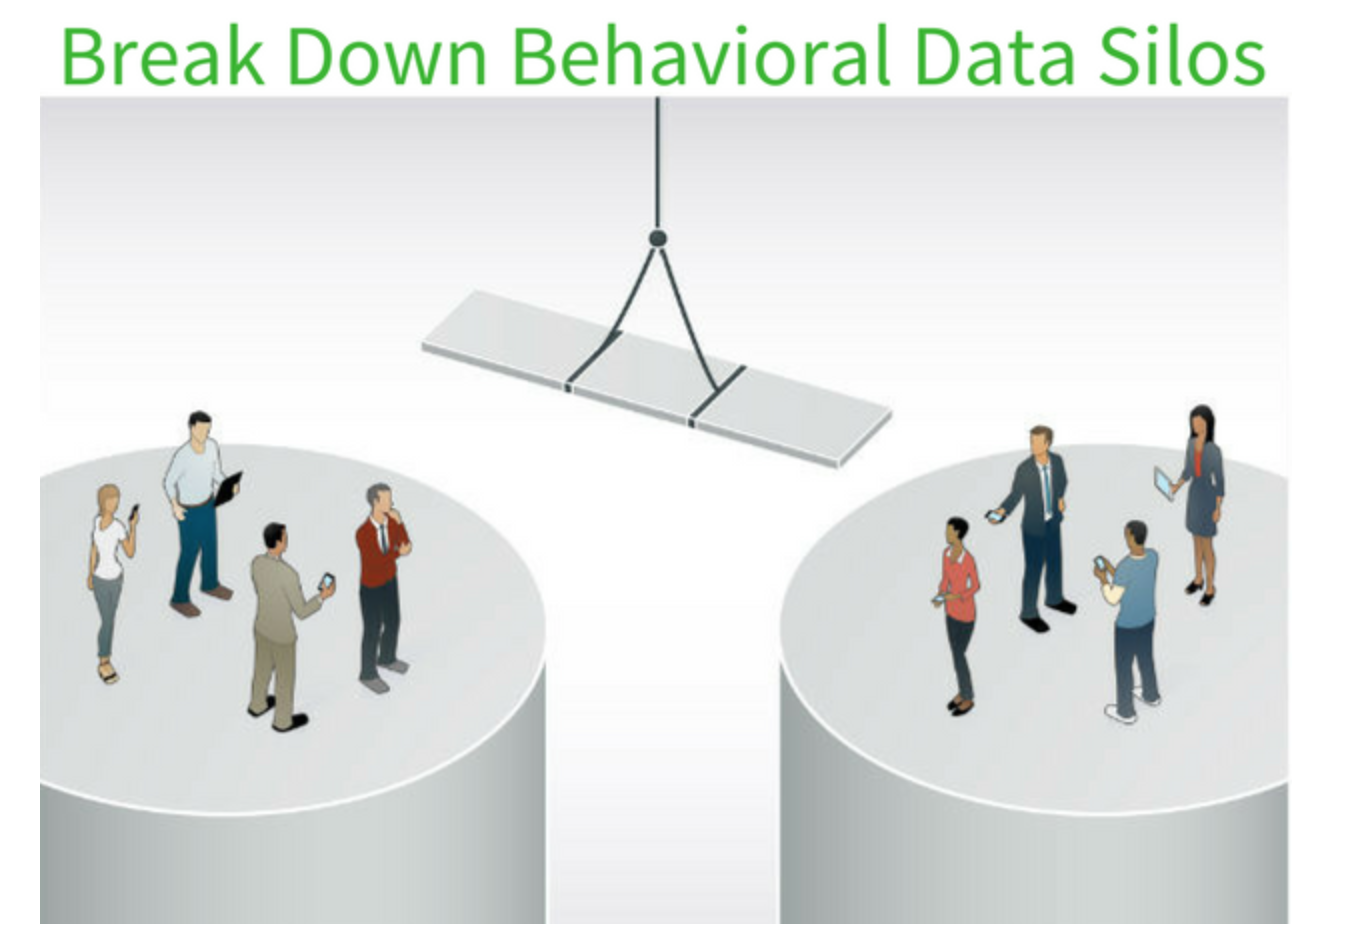 Behavioral Data Silos